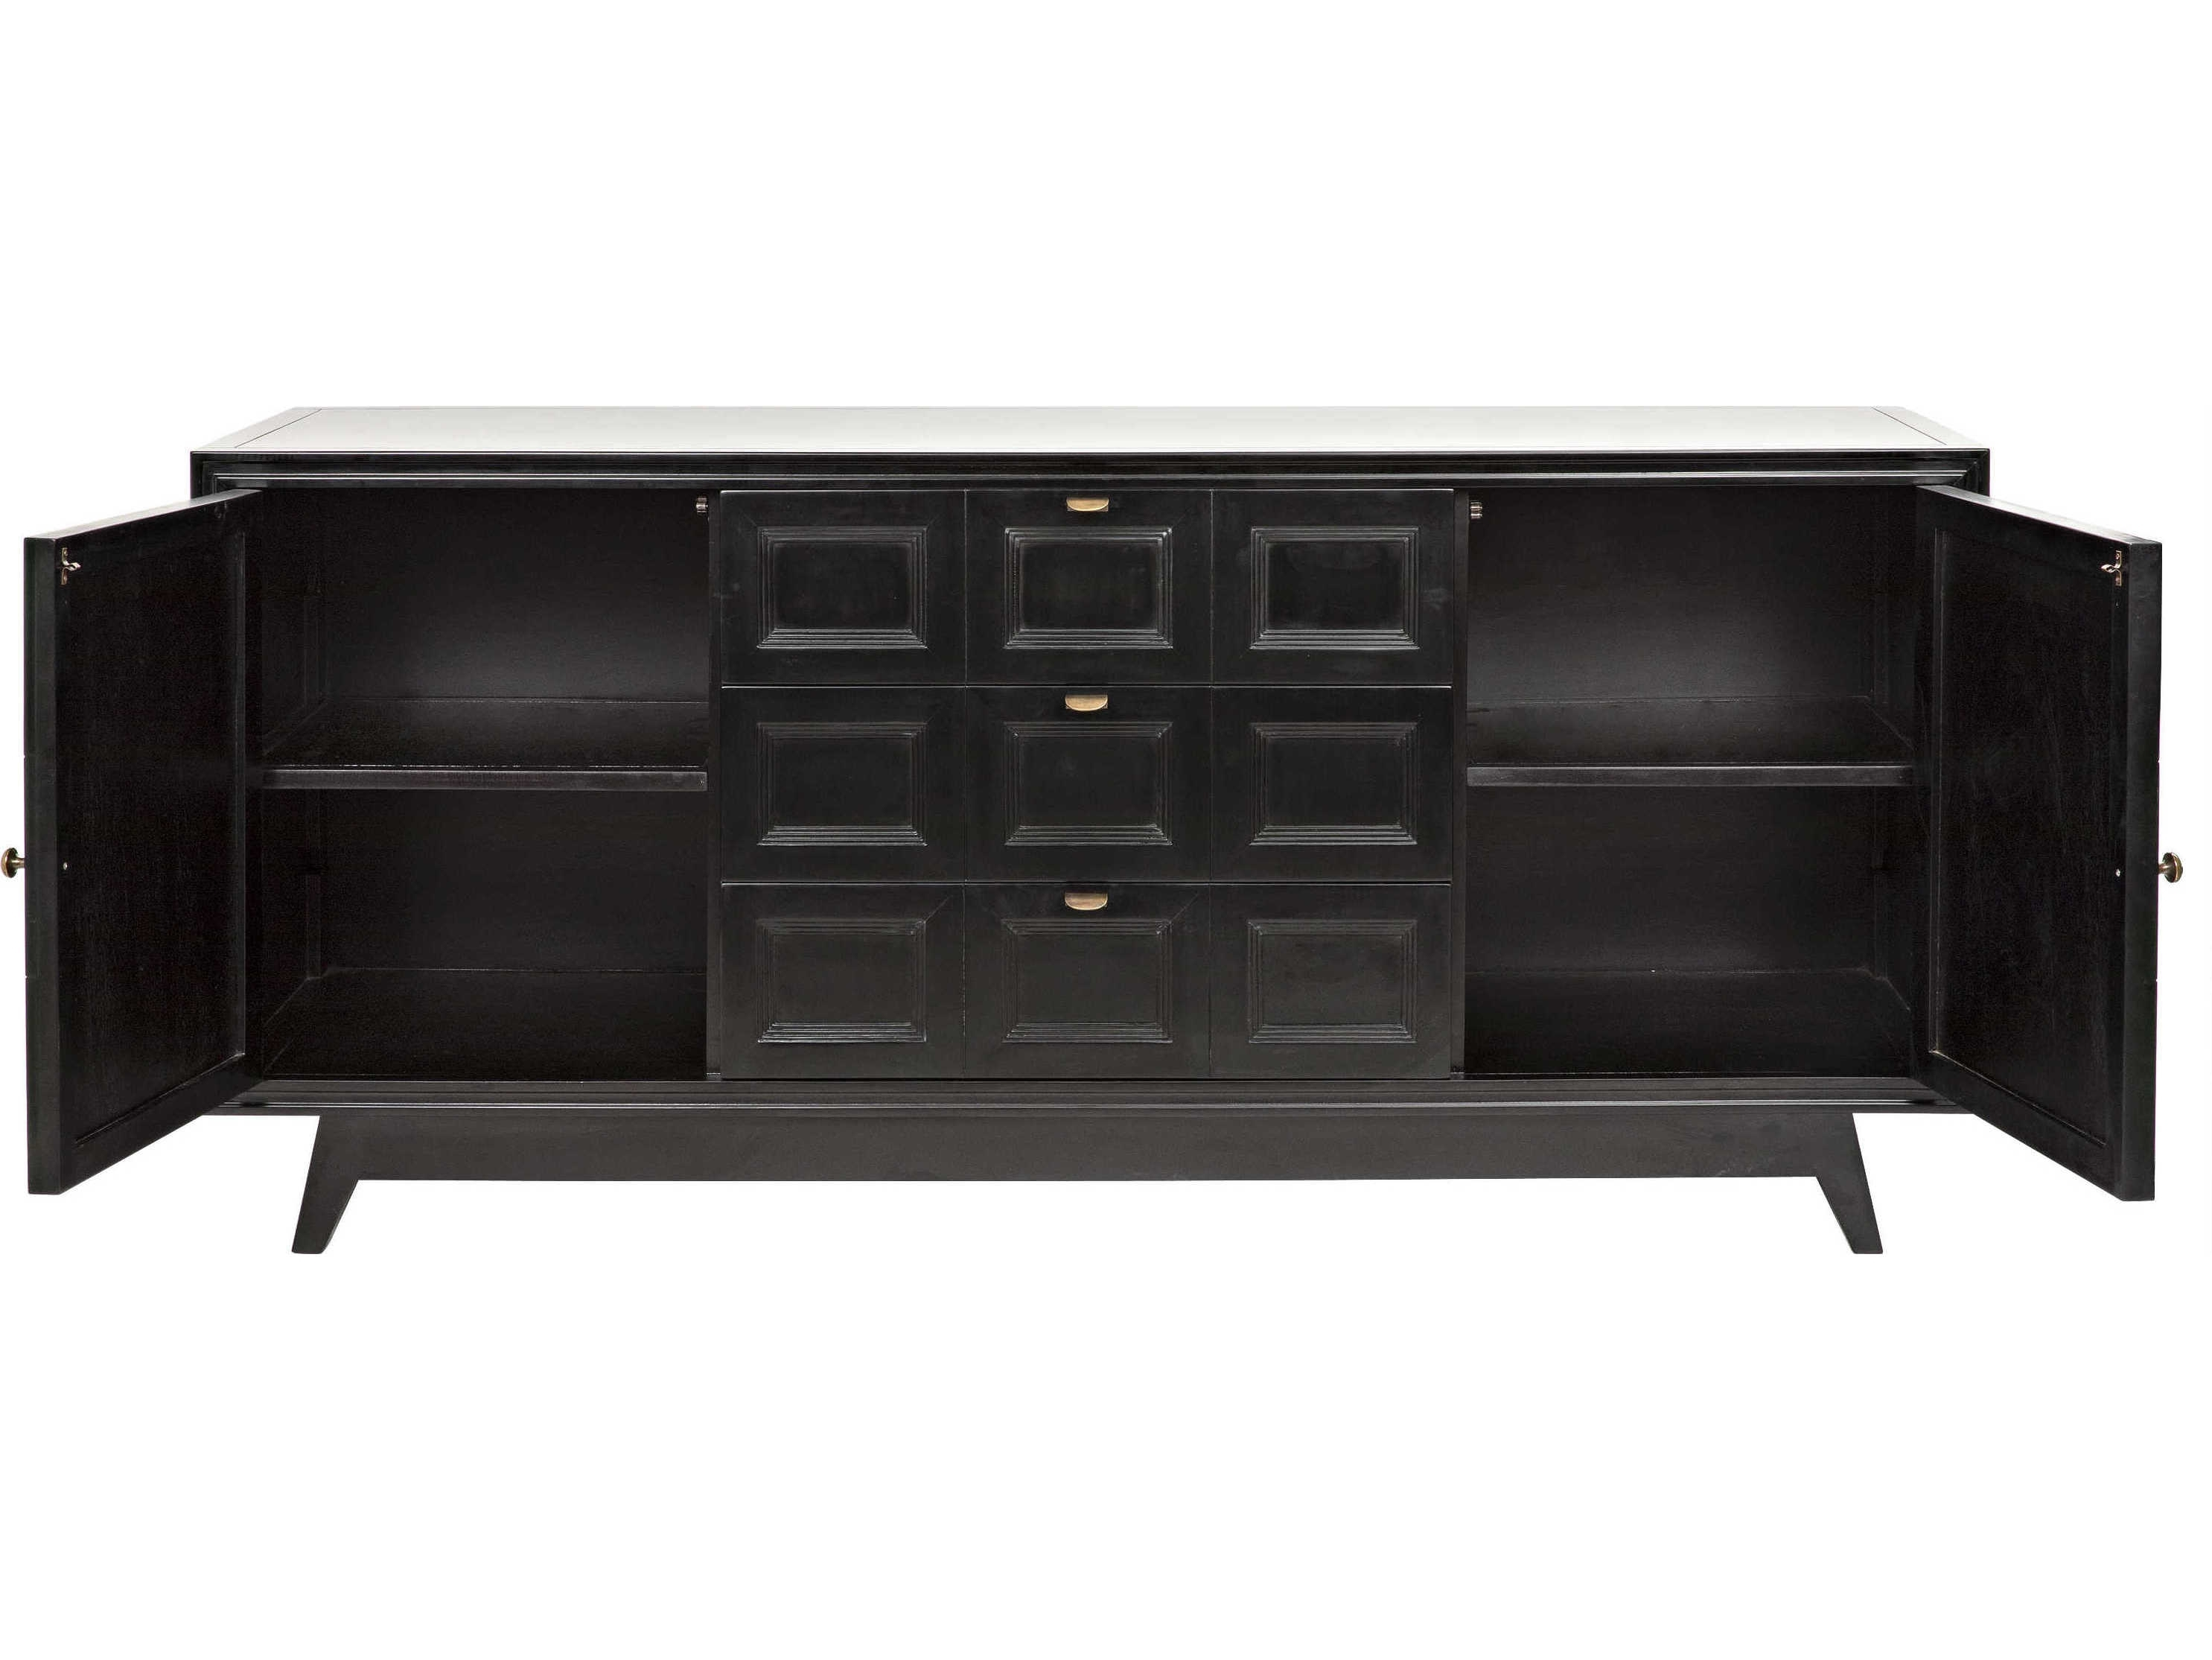 Noir Furniture Wyatt Charcoal 73'' X 23'' Sideboard | Noigcon249ch Within Latest Wyatt Sideboards (View 12 of 20)